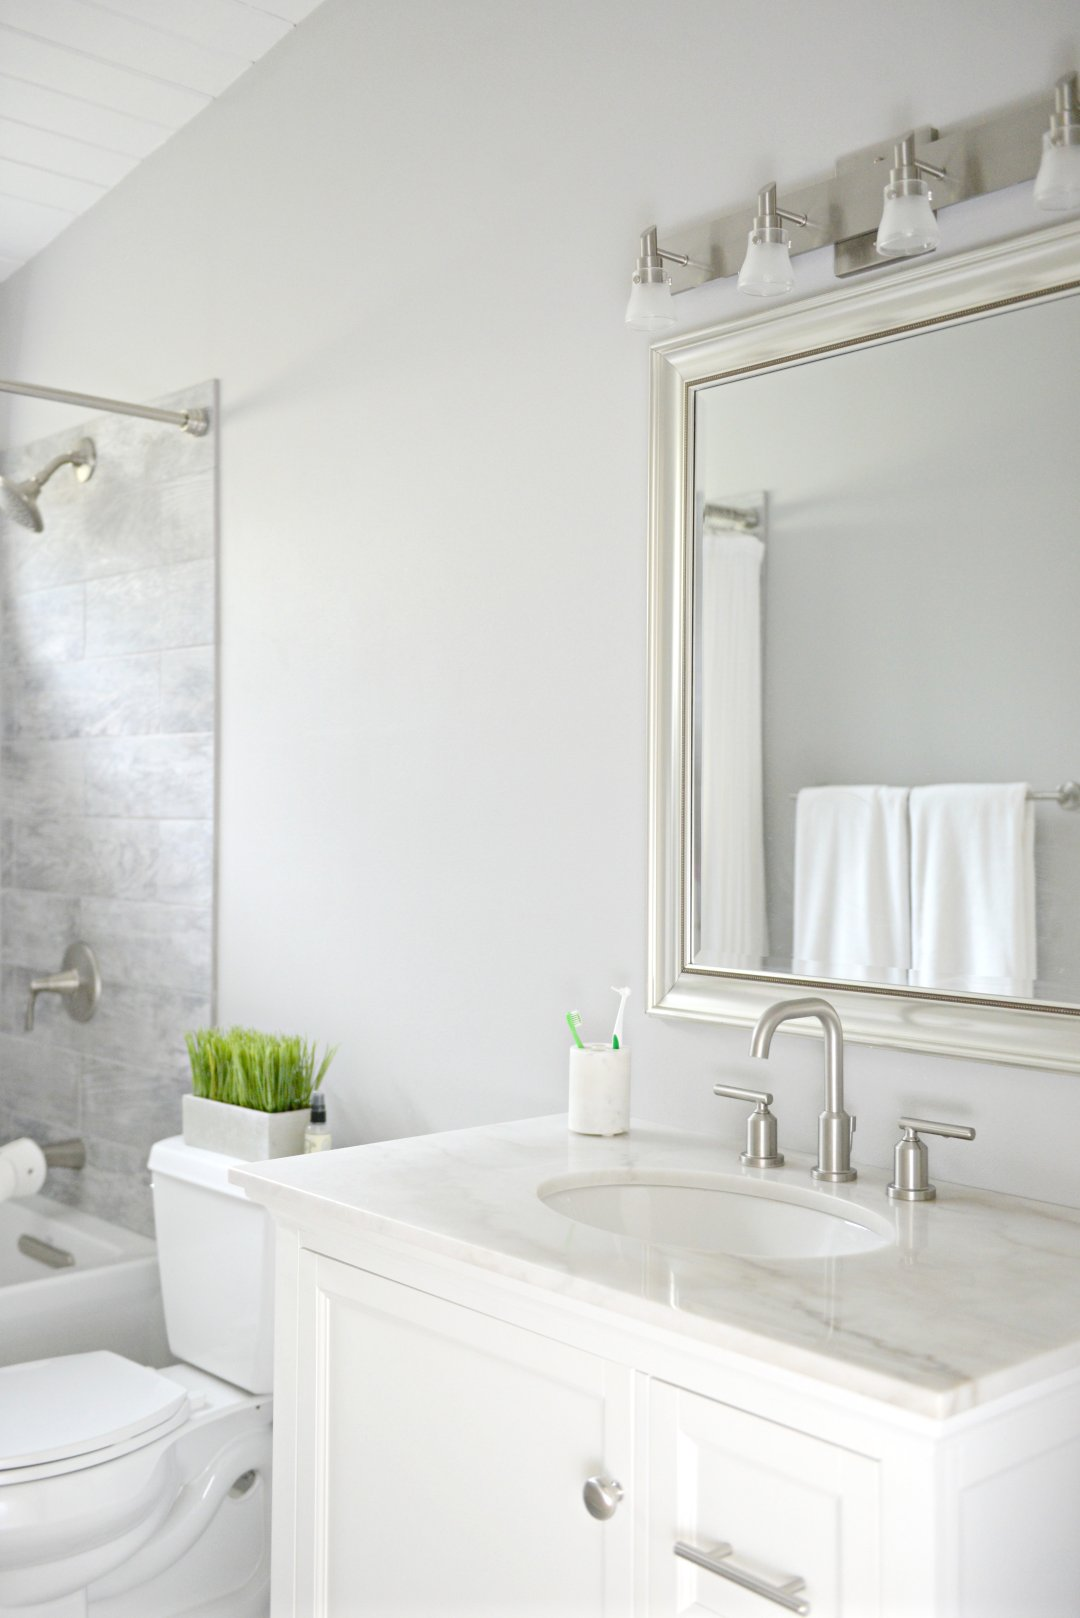 bathroom update on a budget easy budget friendly bathroom updates from lowes grey and